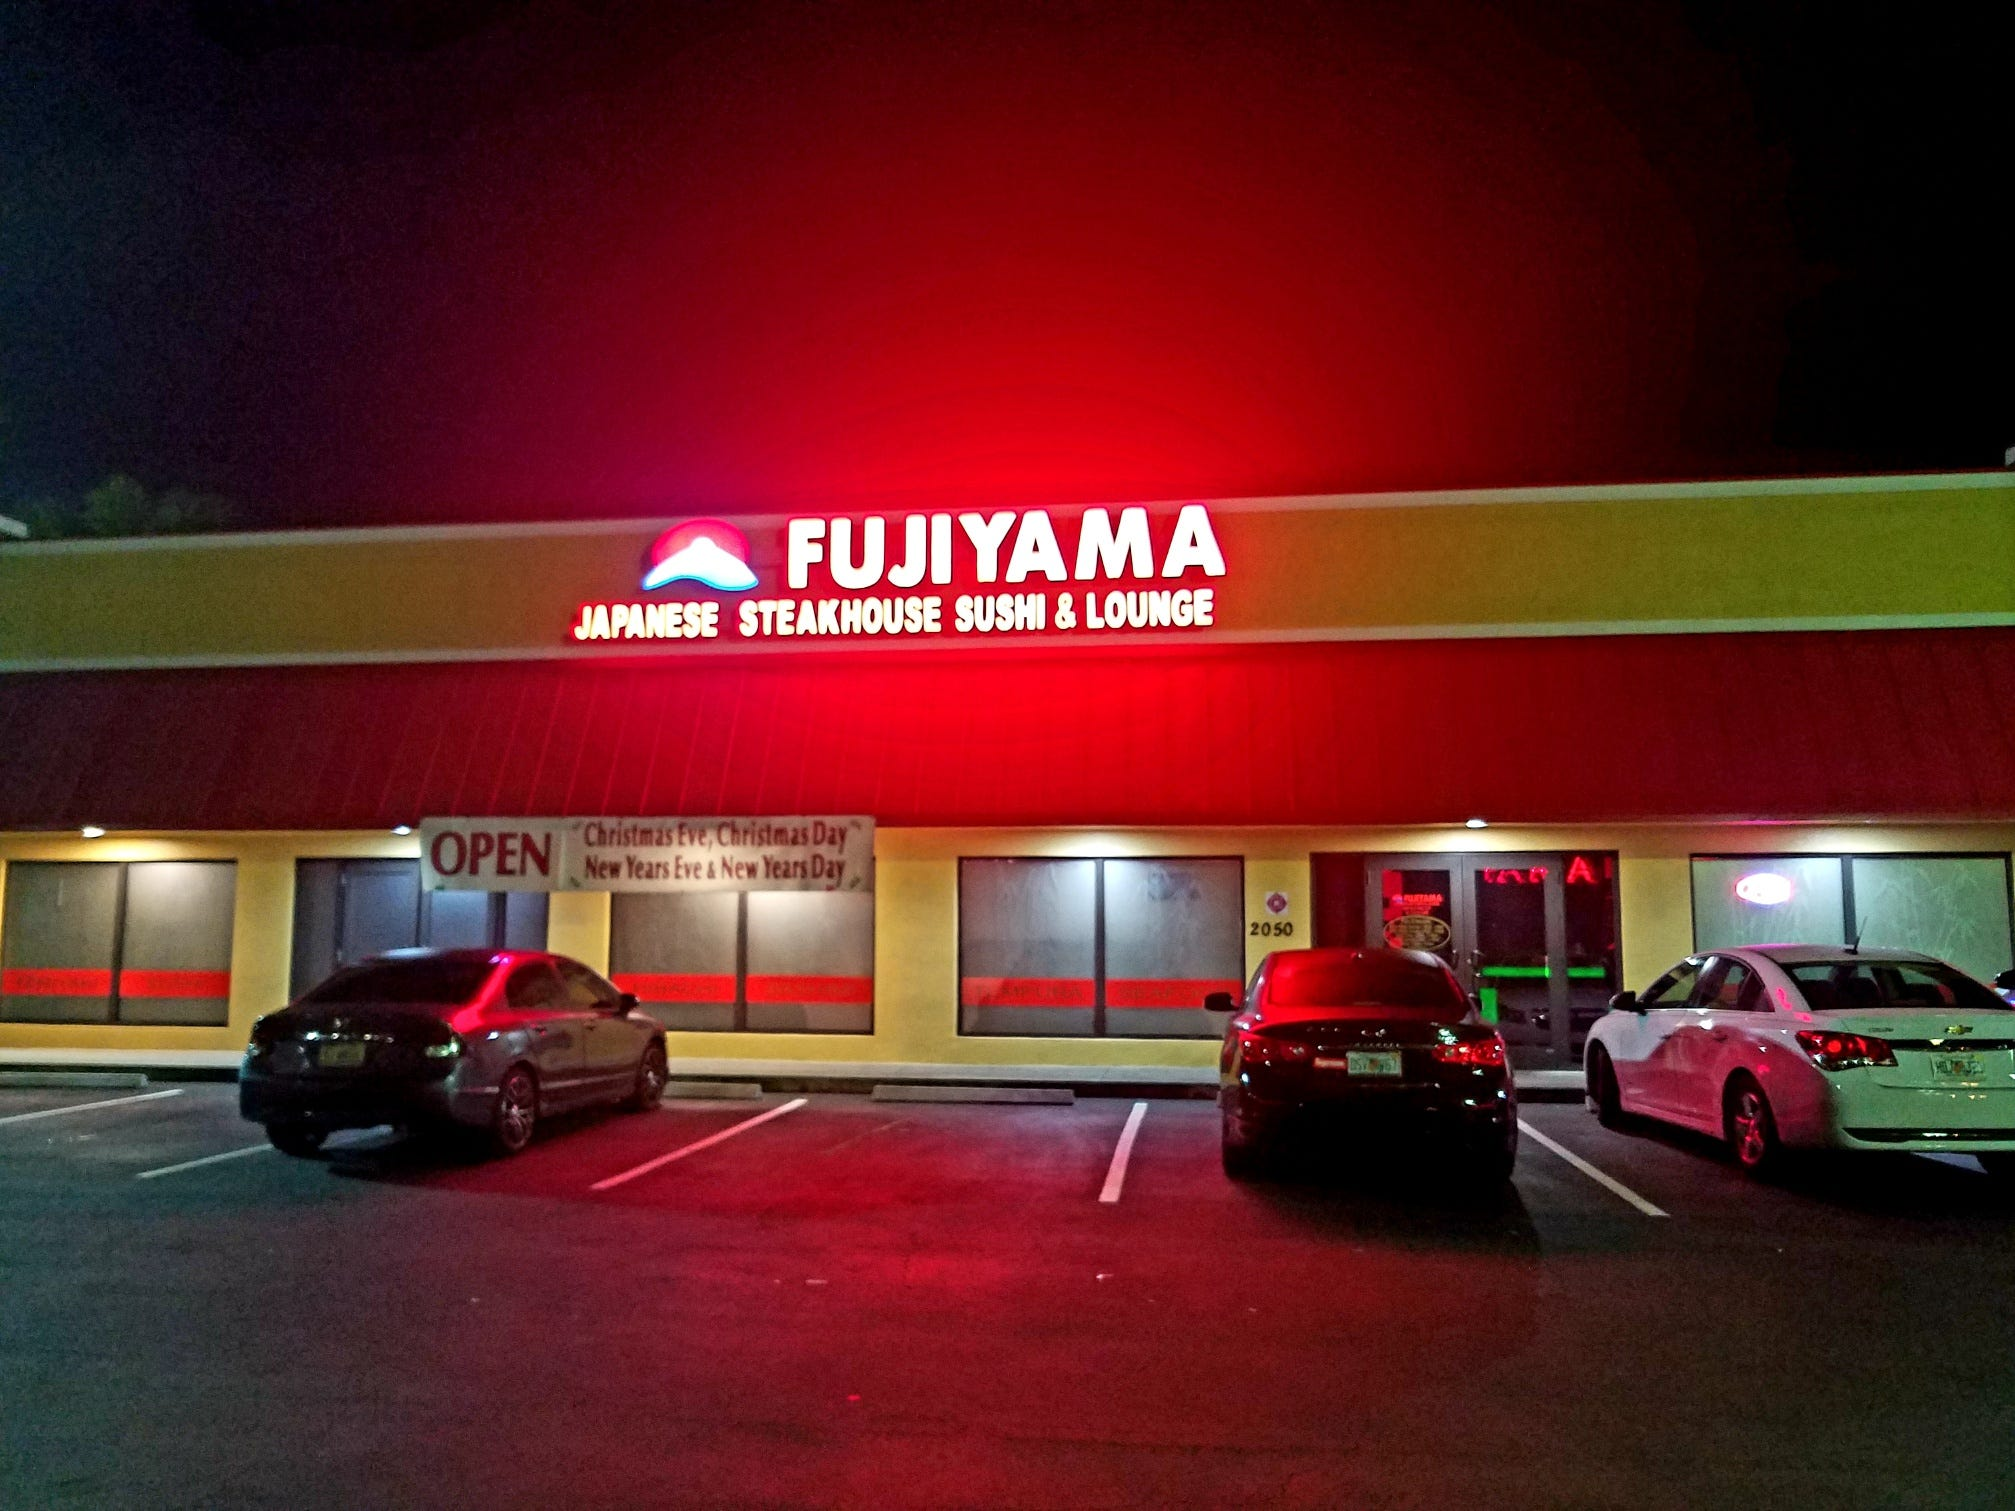 Fujiyama Japanese Steakhouse is at 2050 S.E. Federal Highway in Stuart.